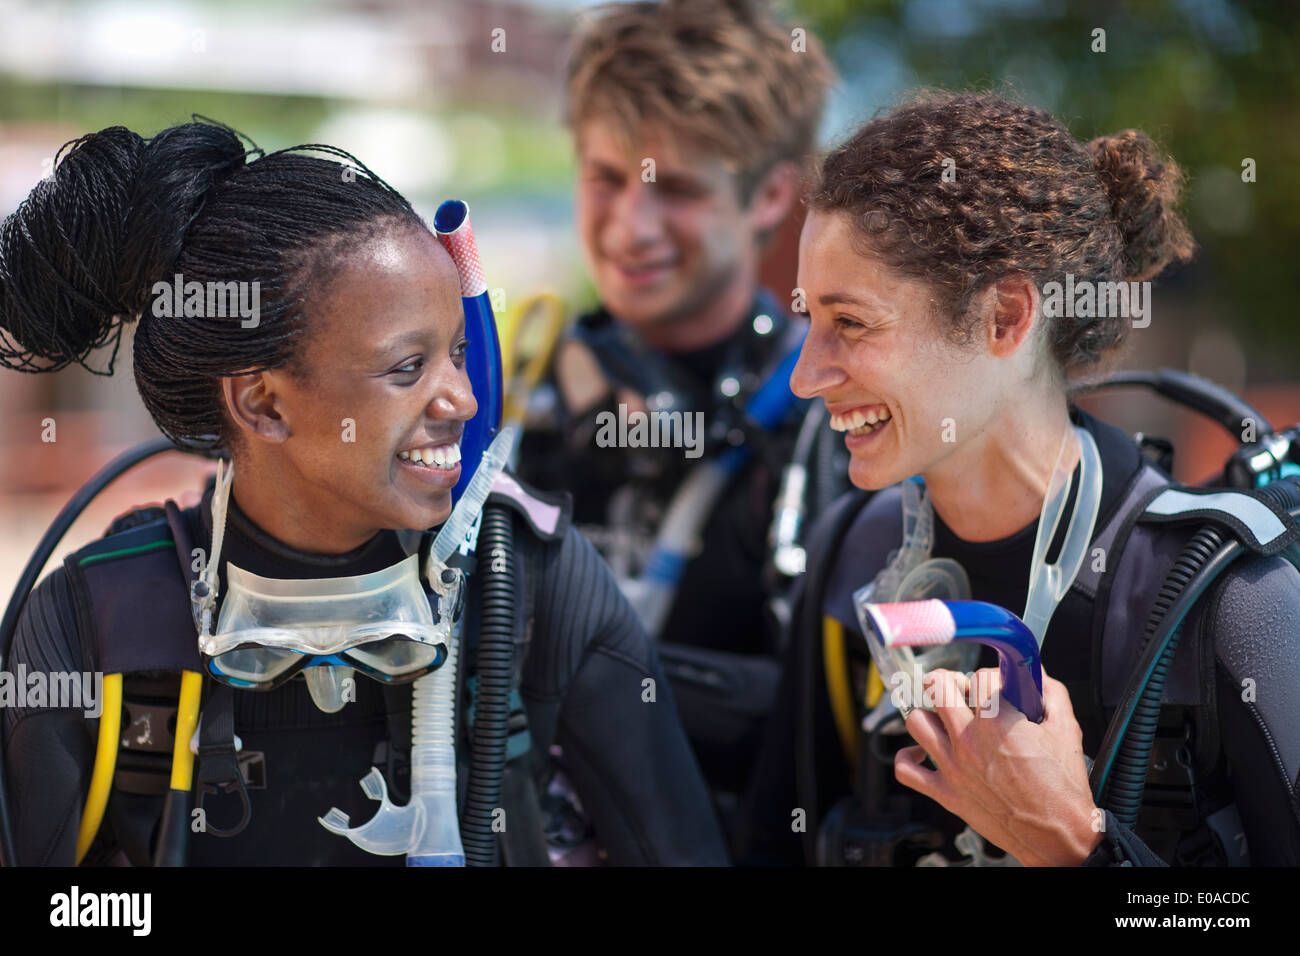 Three young adult scuba divers preparing for pool practice - Stock Image